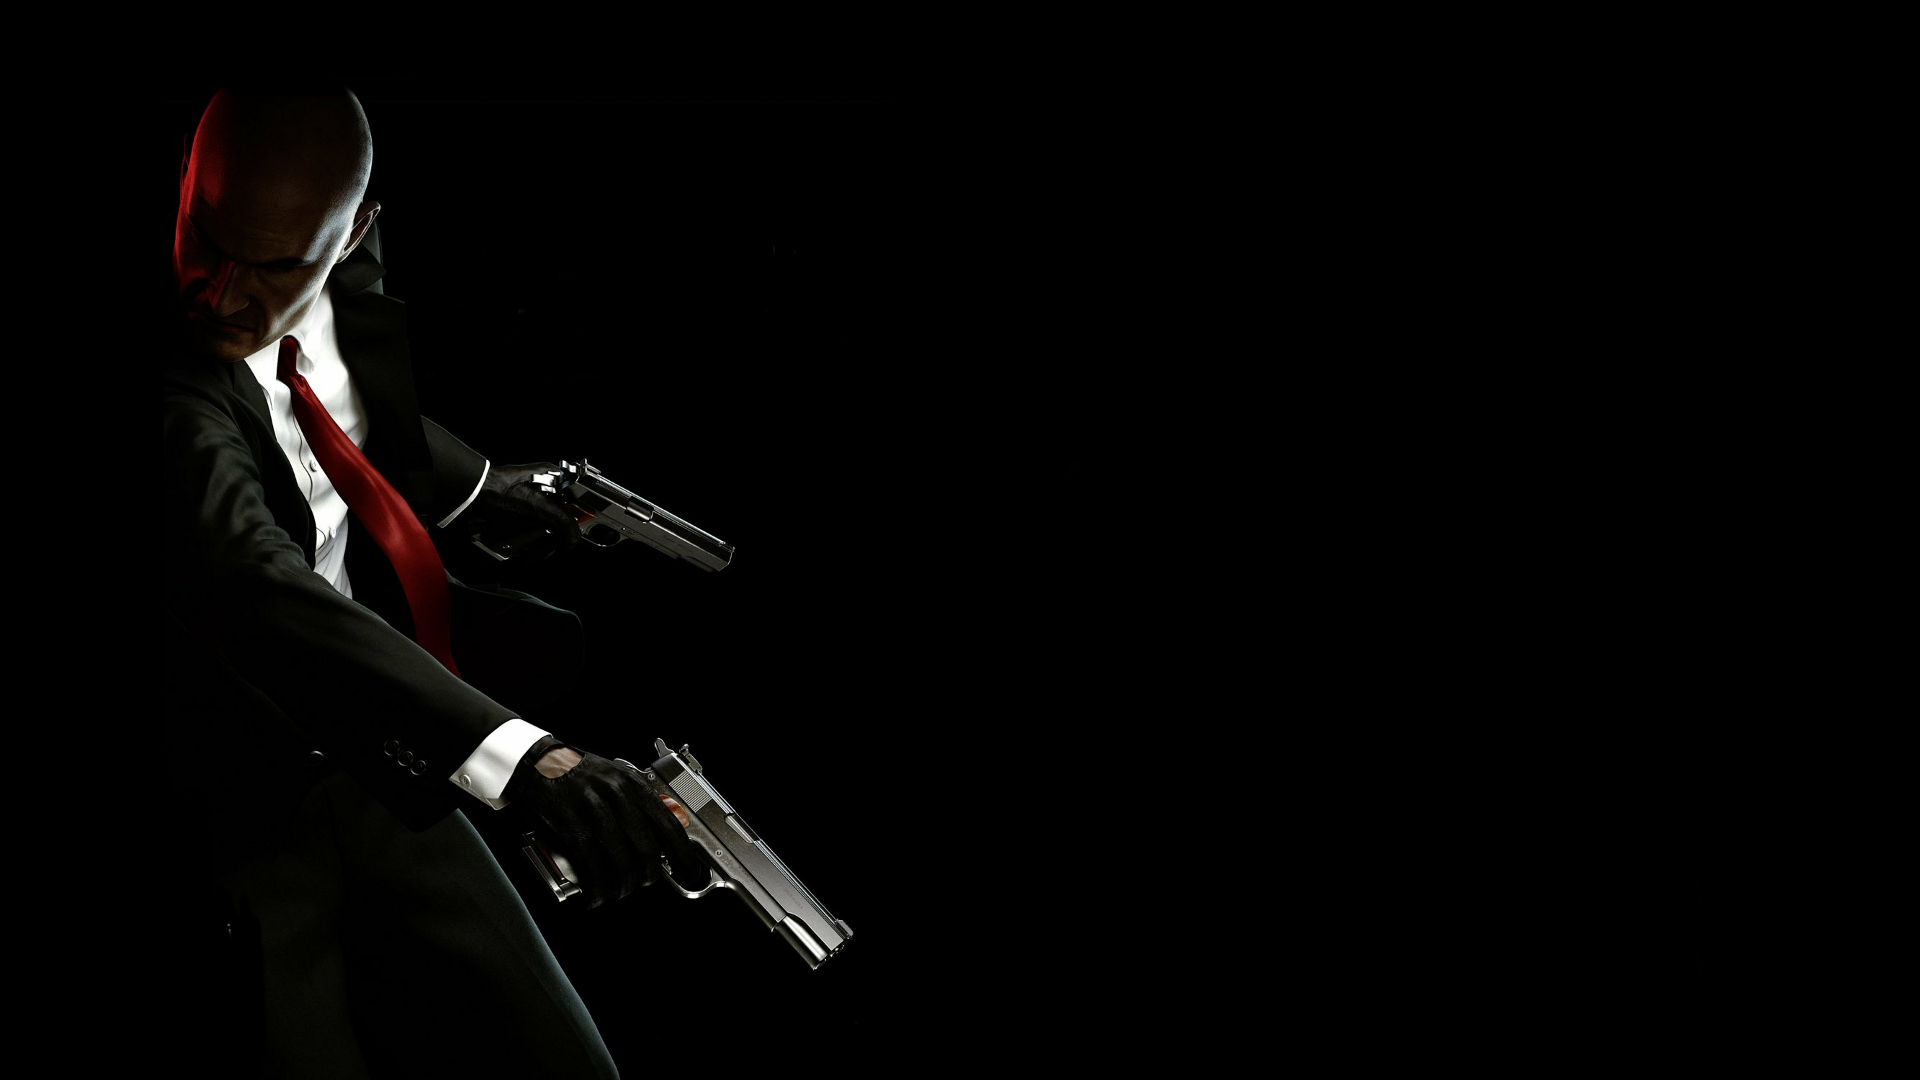 10 Best Hitman Game Wallpapers HD   InspirationSeekcom 1920x1080